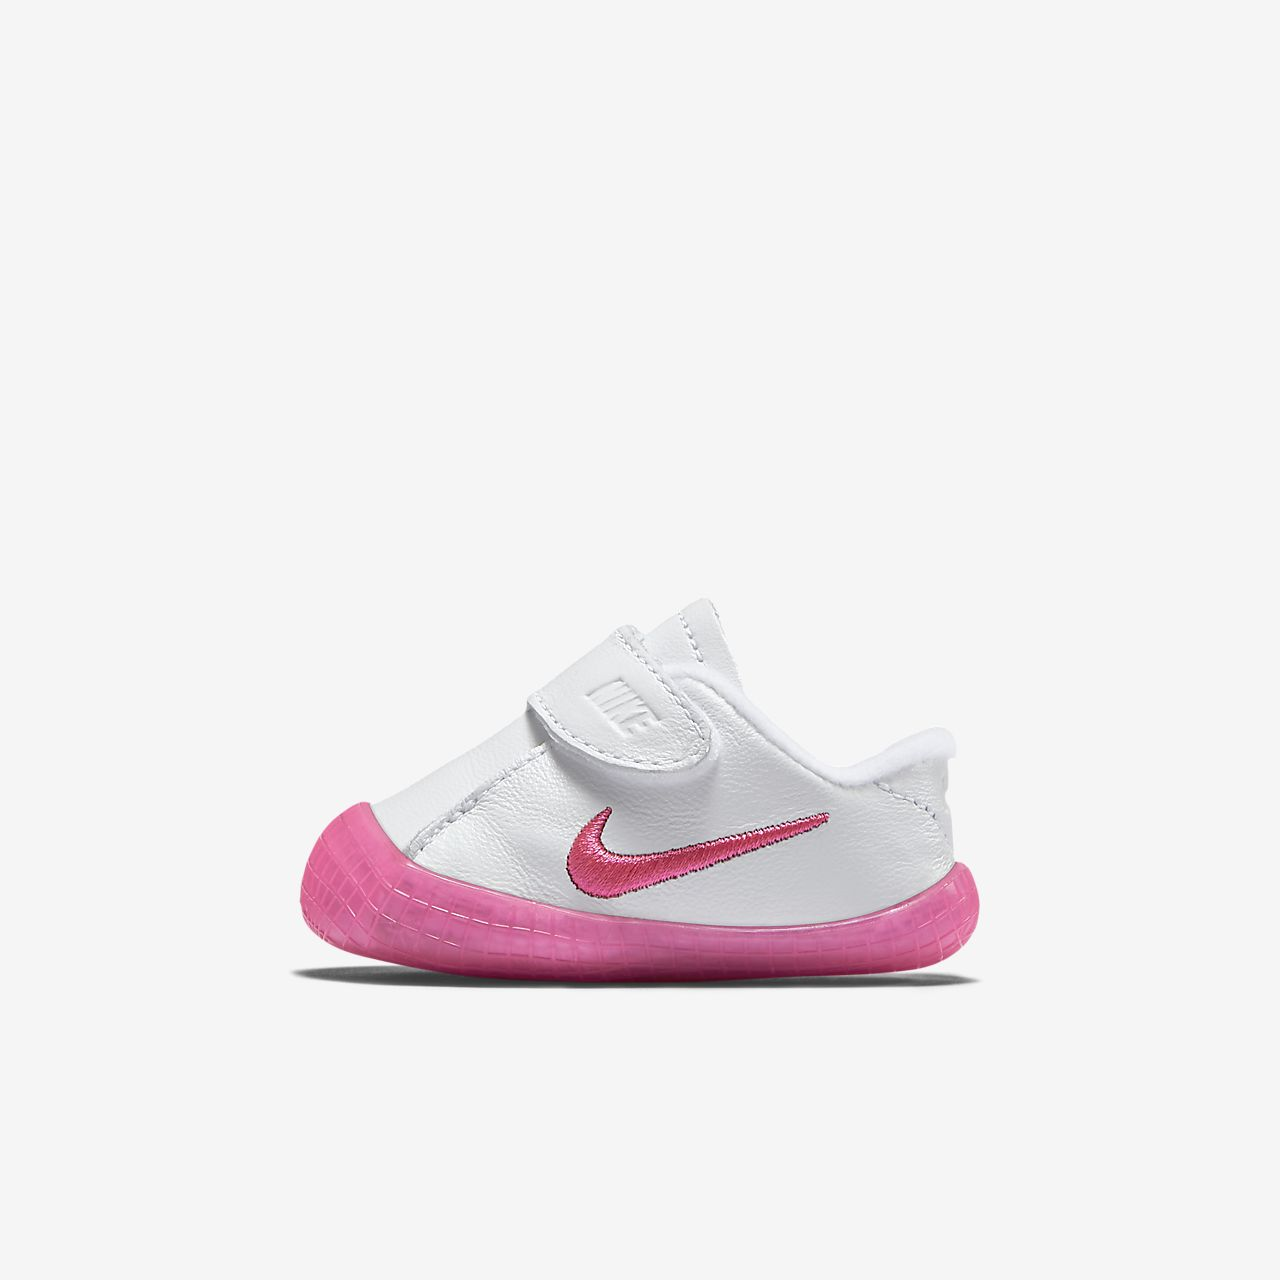 ccdf8f93abe968 Nike Waffle 1 Infant Toddler Bootie. Nike.com